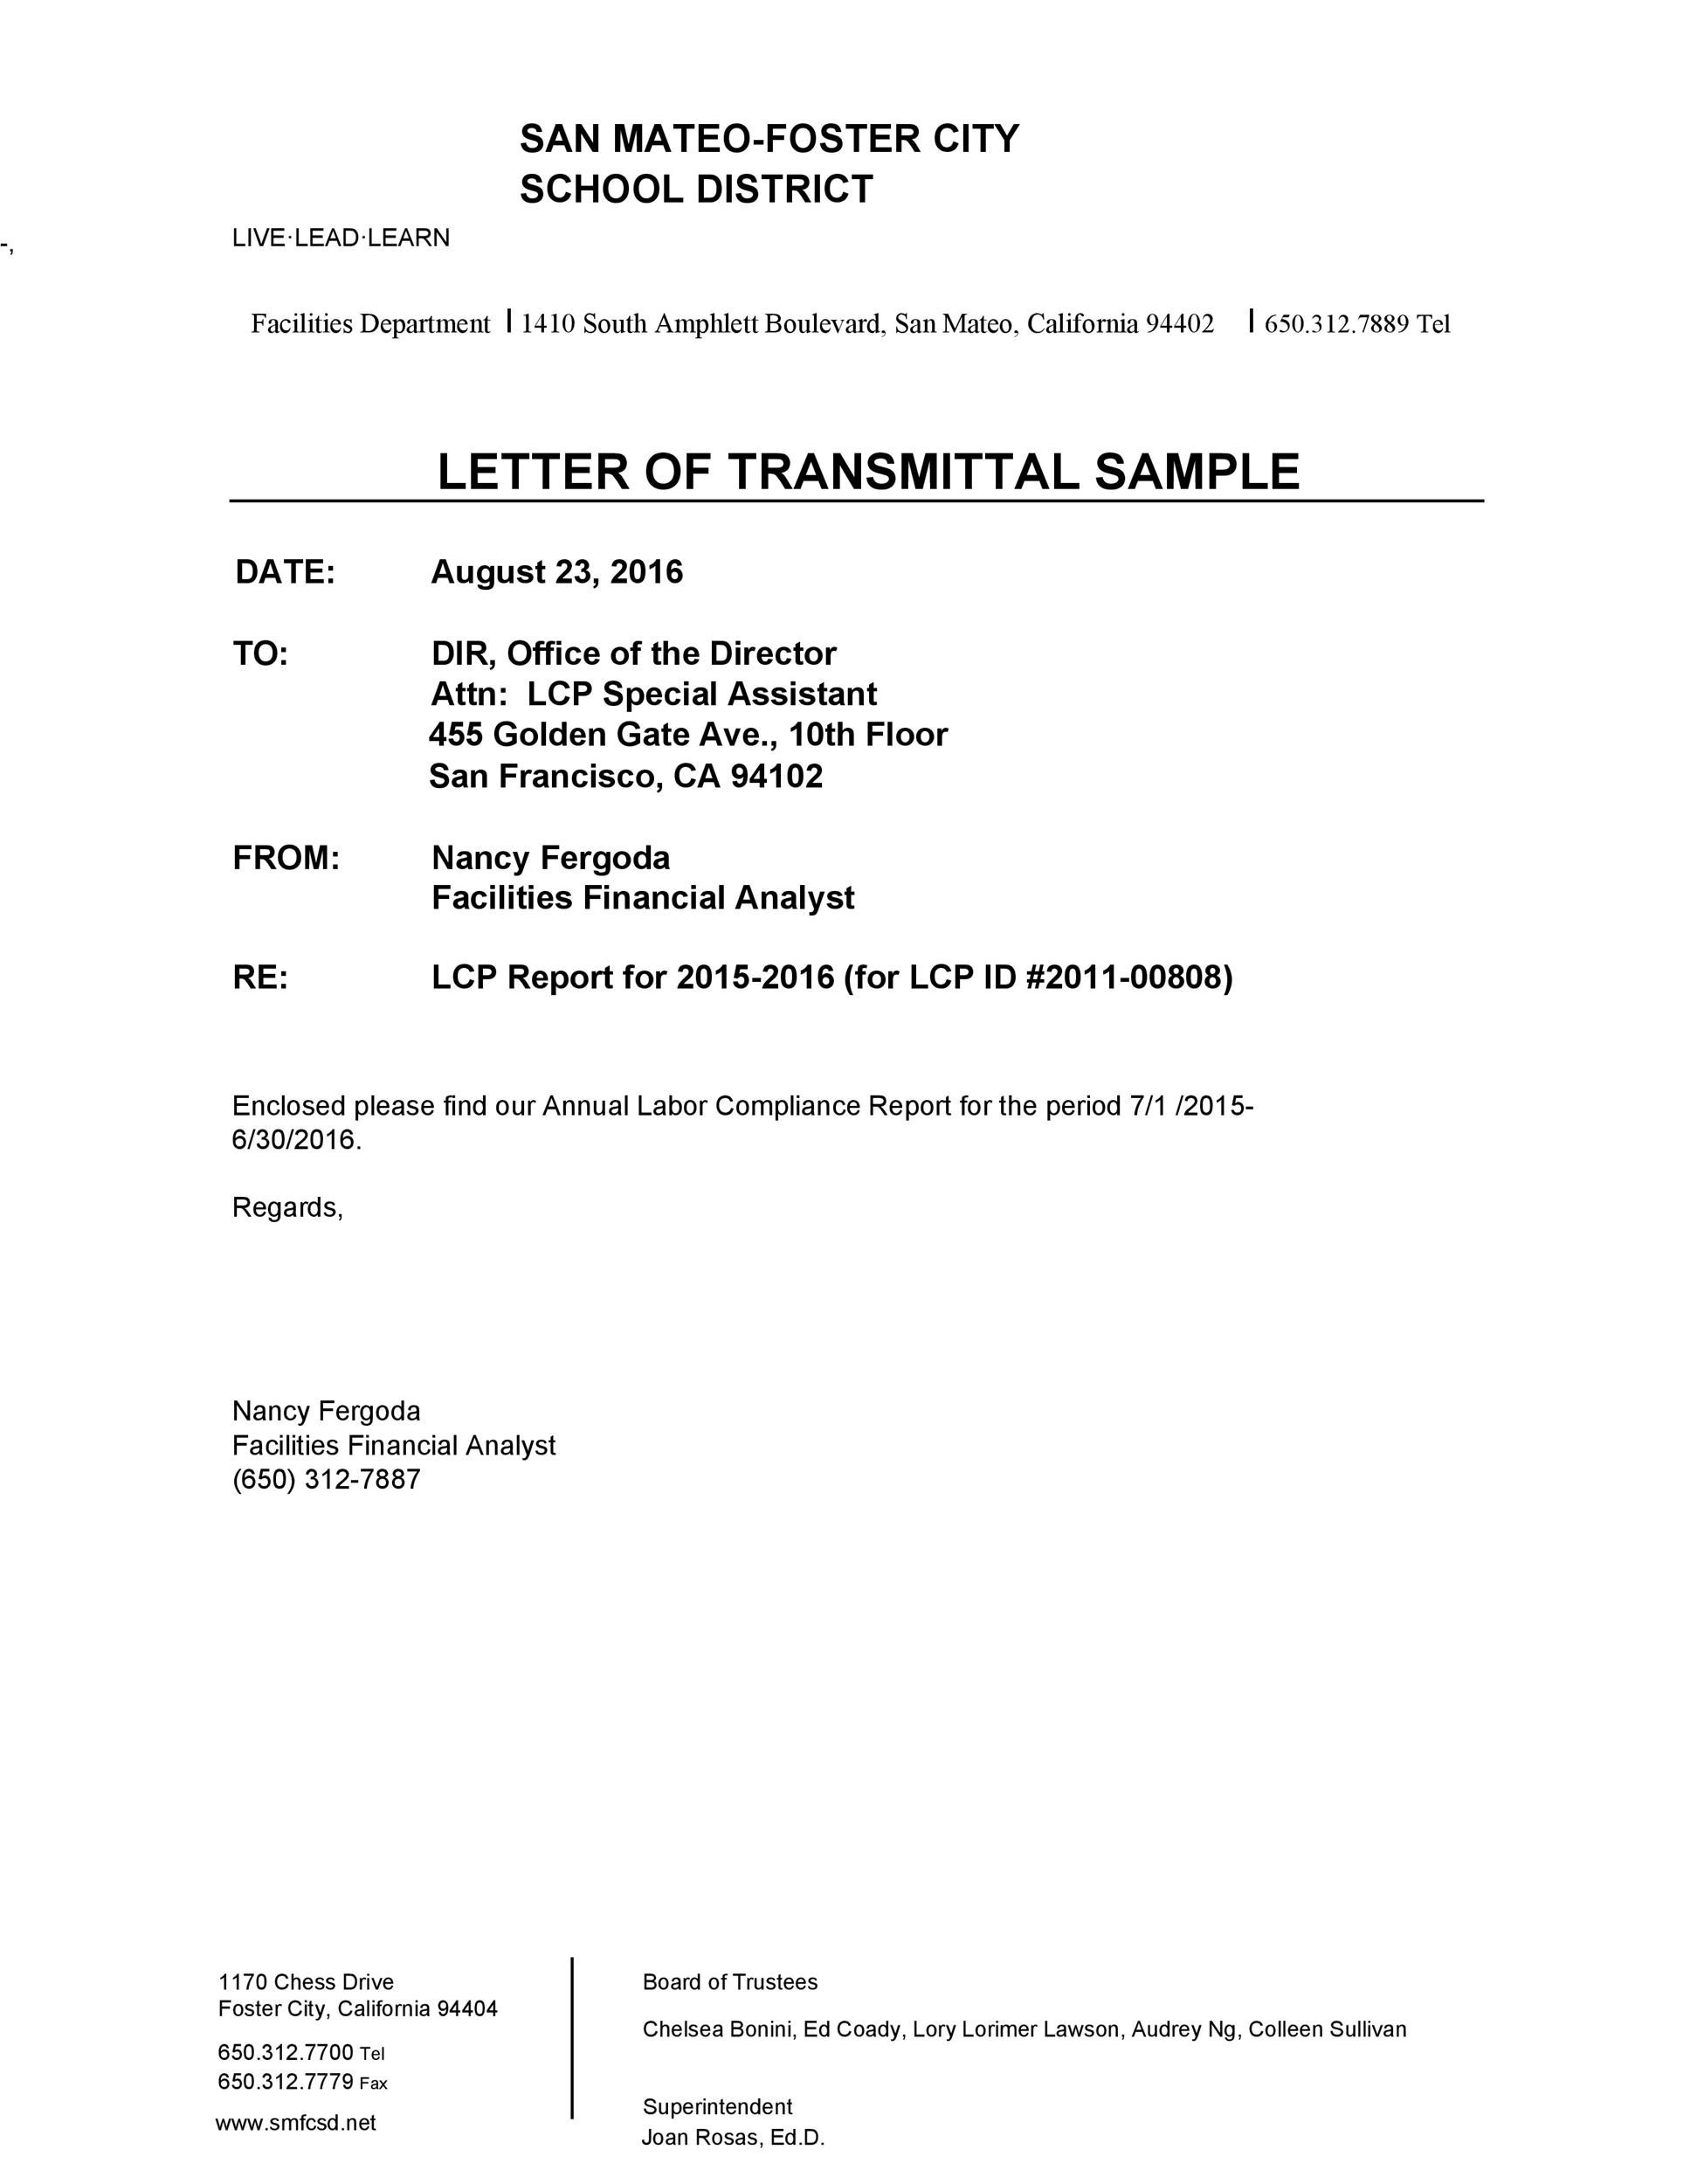 Letter of Transmittal - 40+ Great Examples  Templates - Template Lab - example of transmittal letter